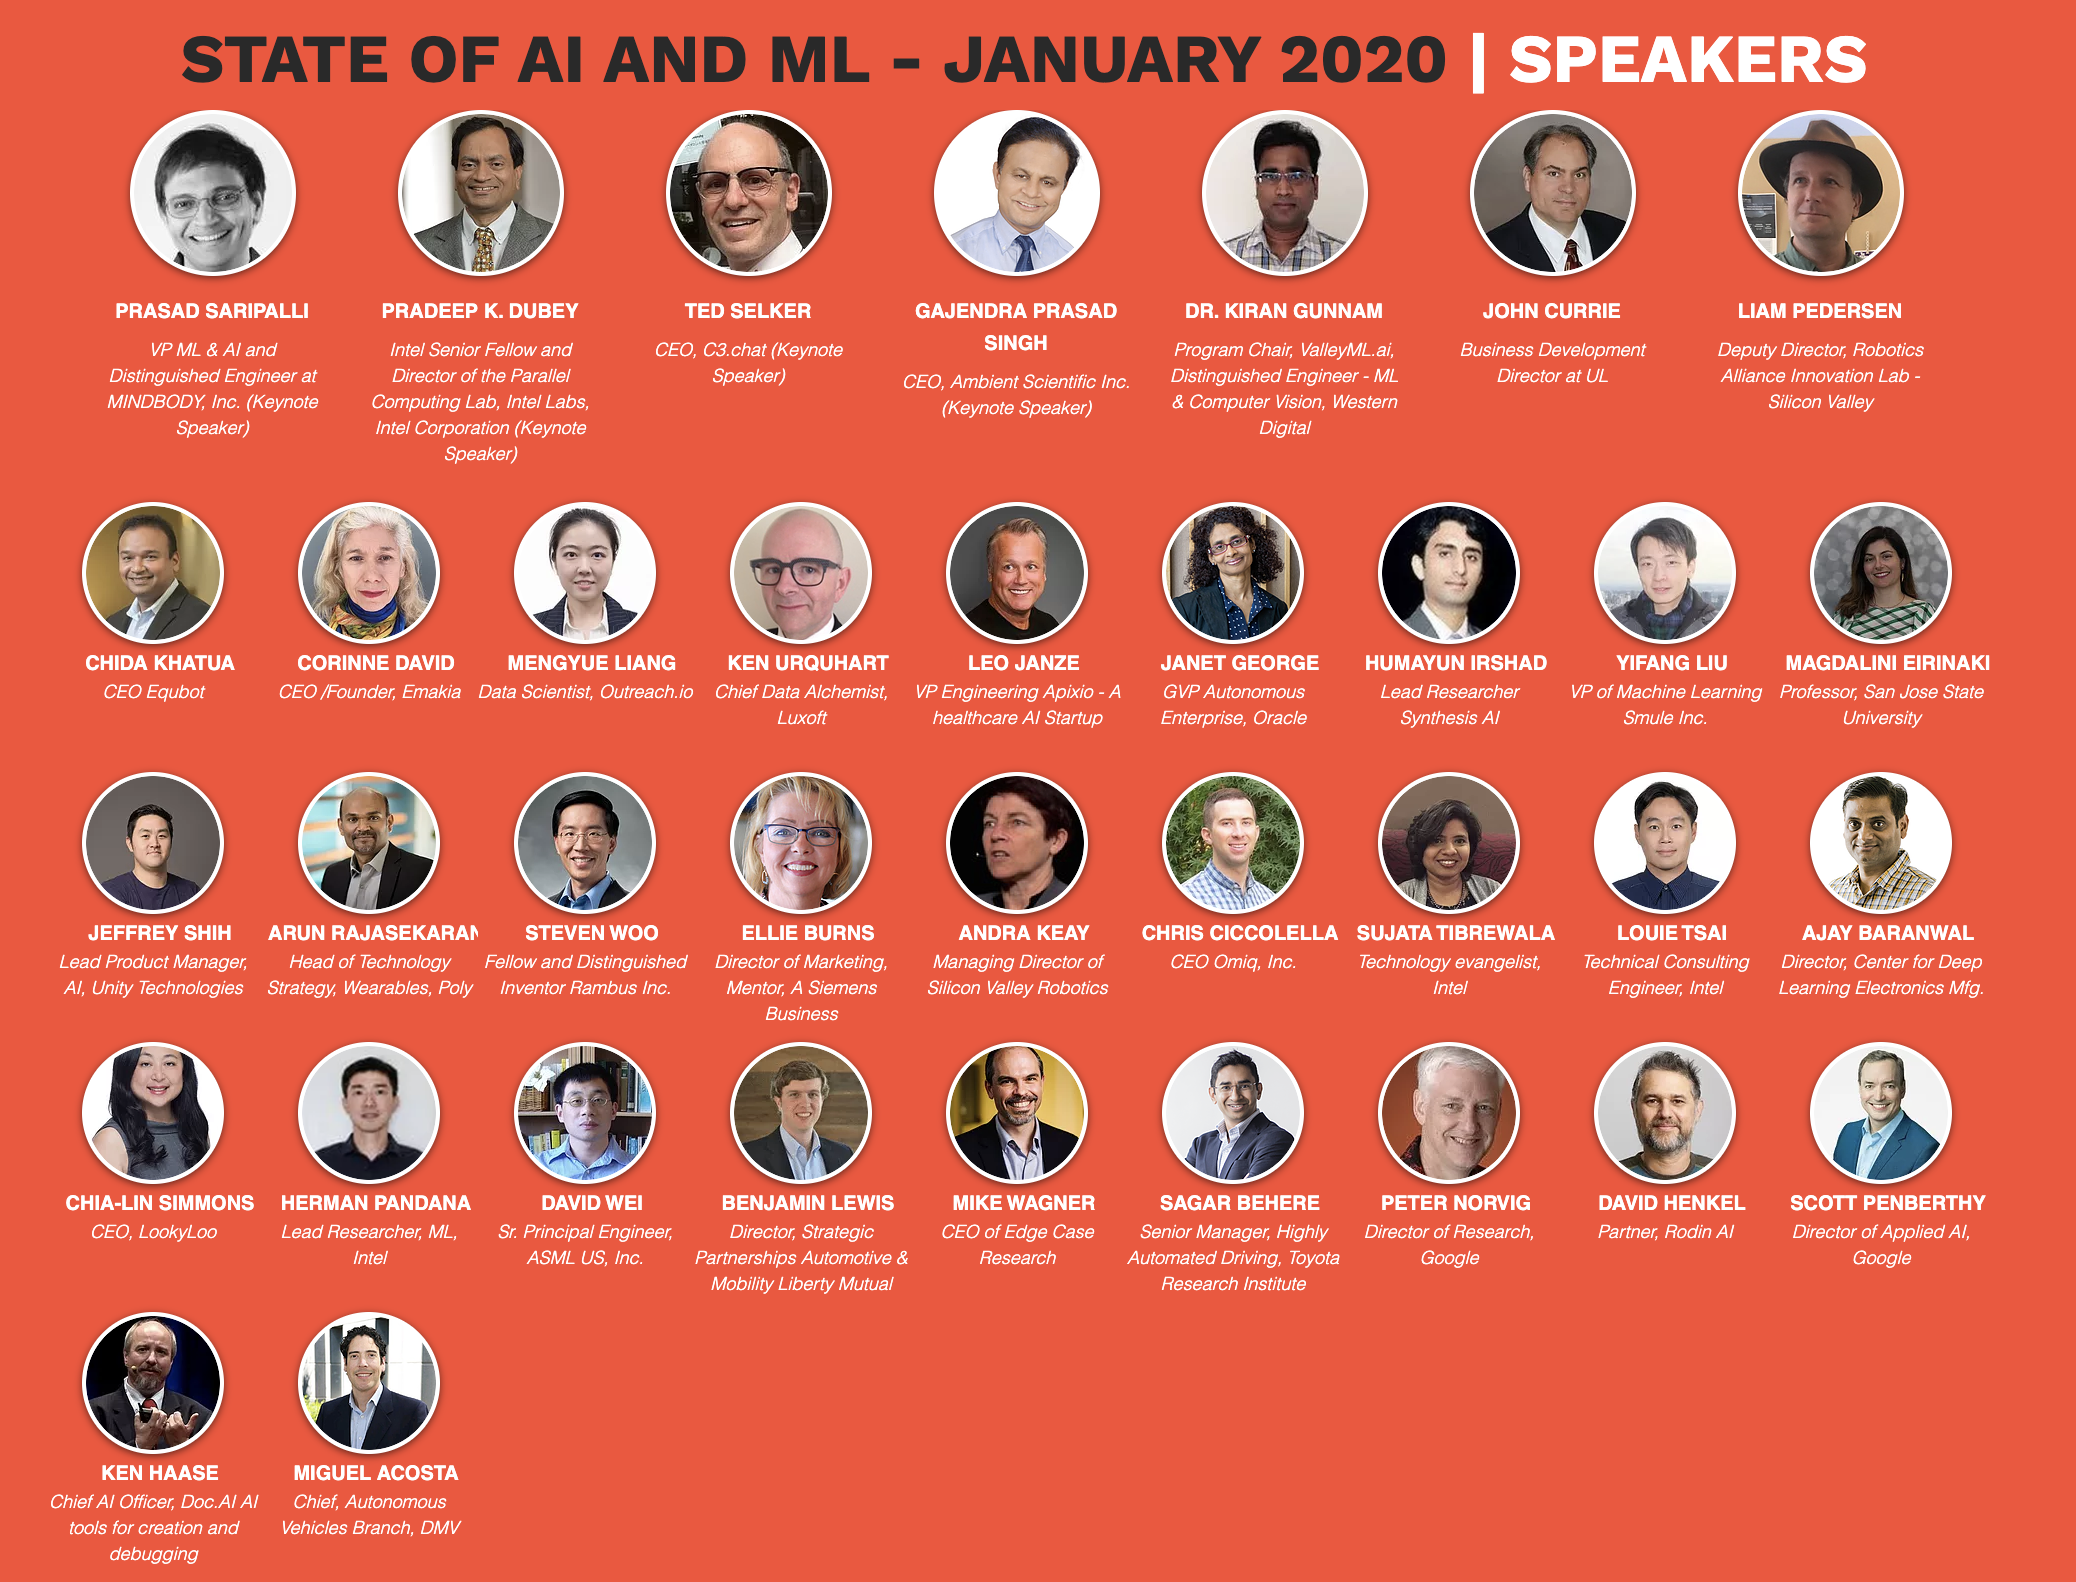 STATE OF AI AND ML - JANUARY 2020 | SPEAKERS